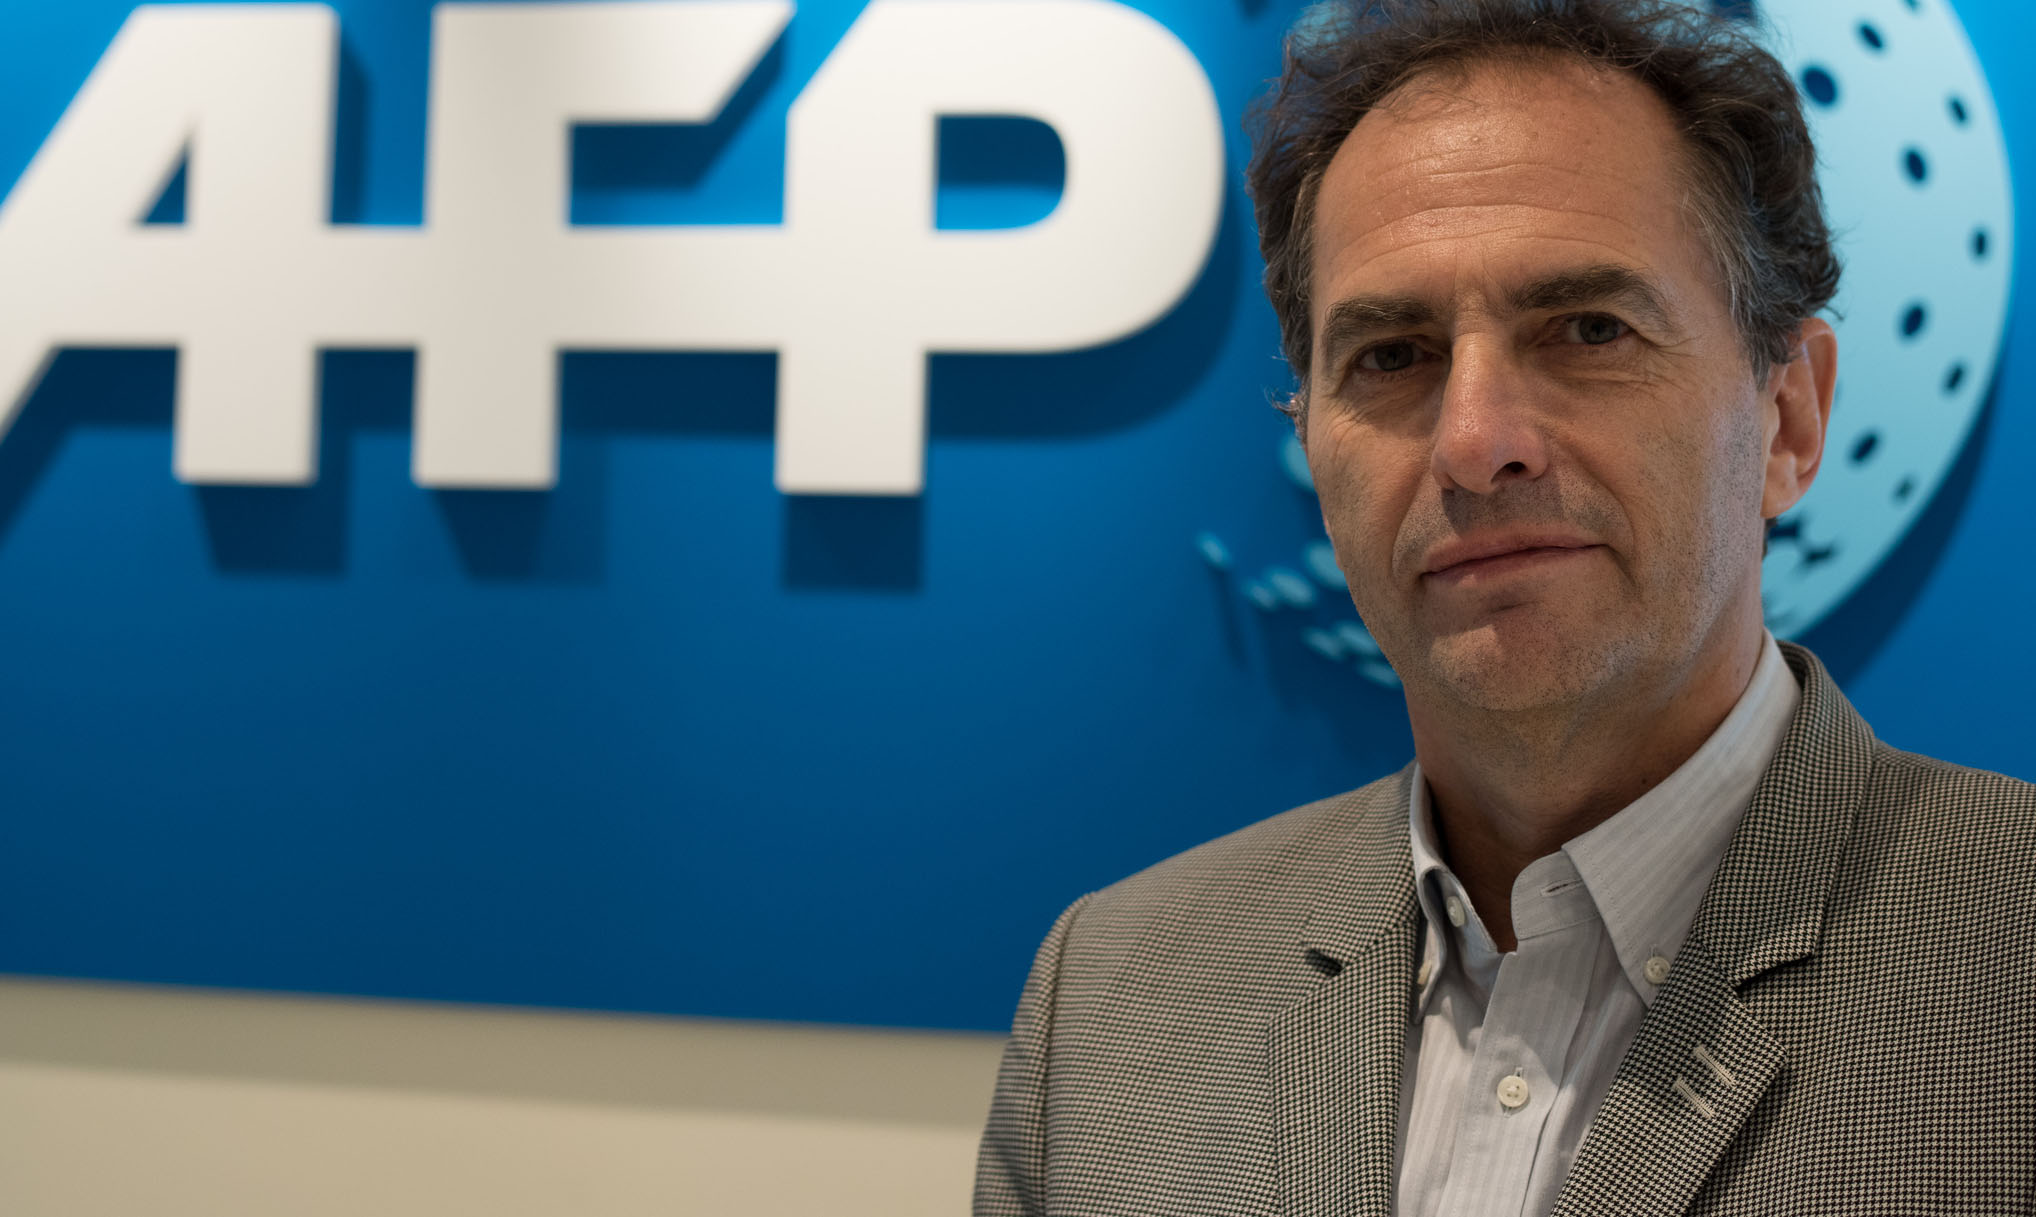 Meet the Editor: How AFP as a News Agency is Handling the Challenges of the Post-Truth World